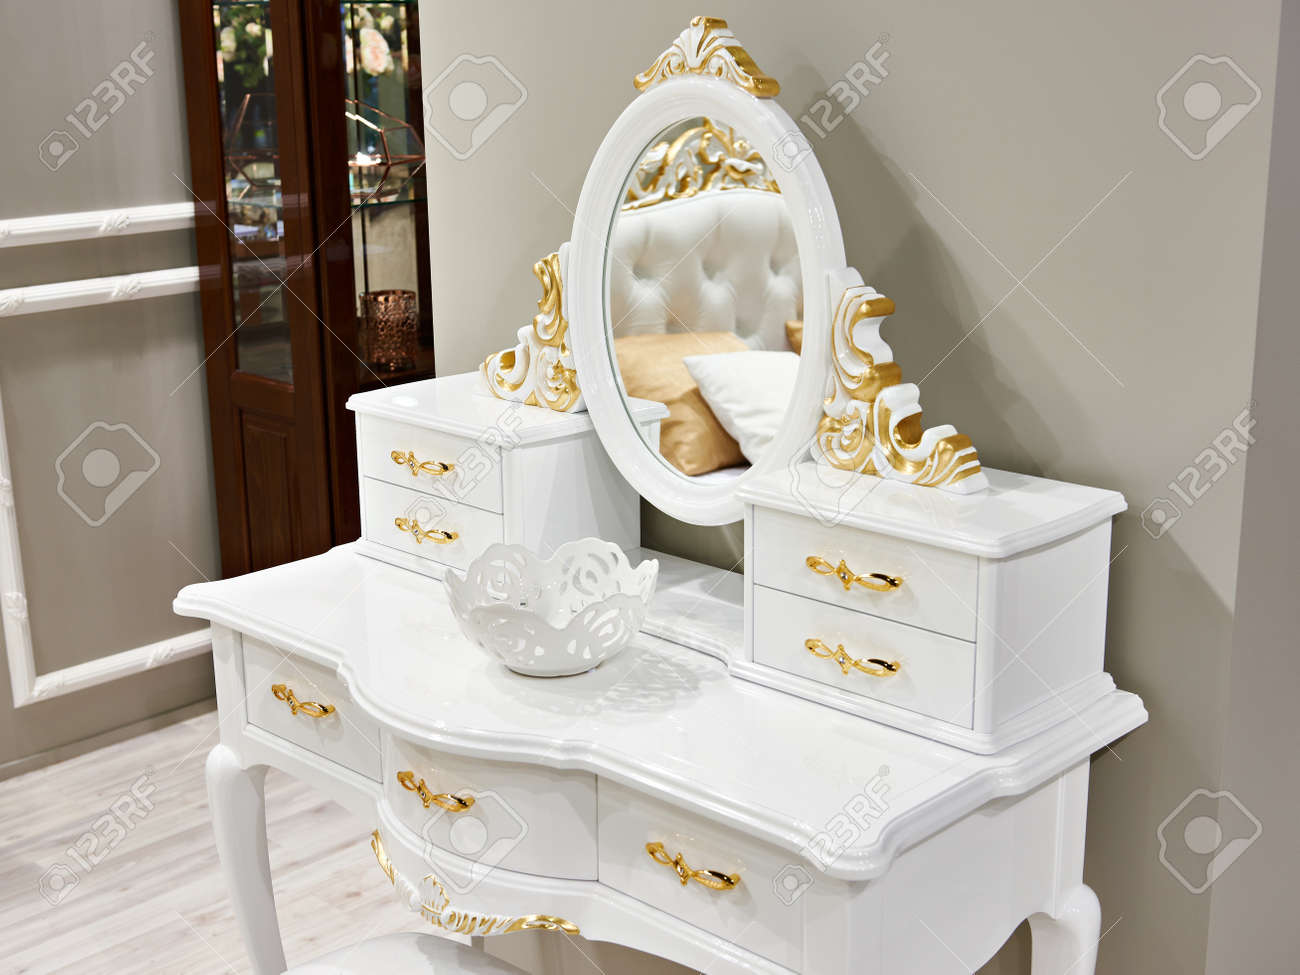 Vintage White Gold Interior Dressing Table Stock Photo Picture And Royalty Free Image Image 95999507